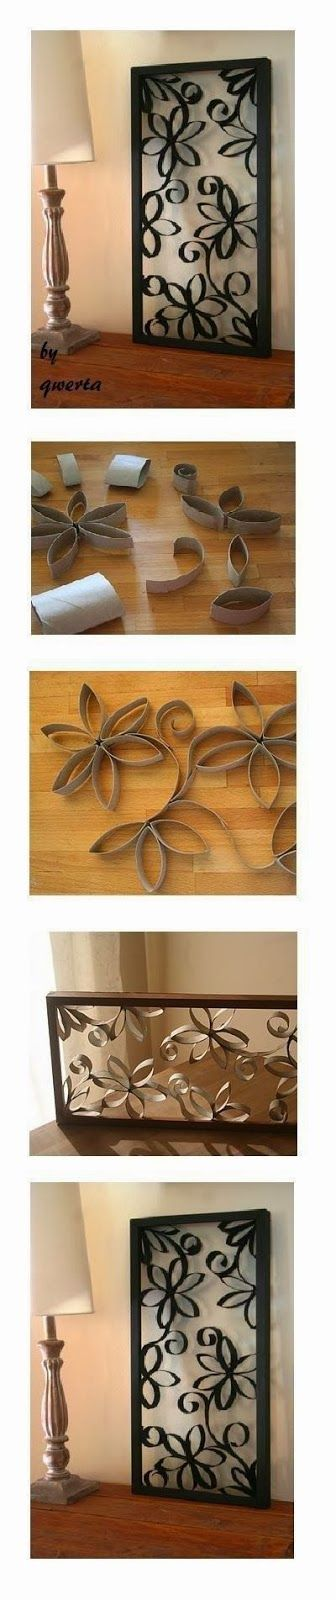 DIY Toilet Paper Roll Wall Decoration  By the use of toilet  paper rolls you can make such beautiful and impressive decoration at  hom...